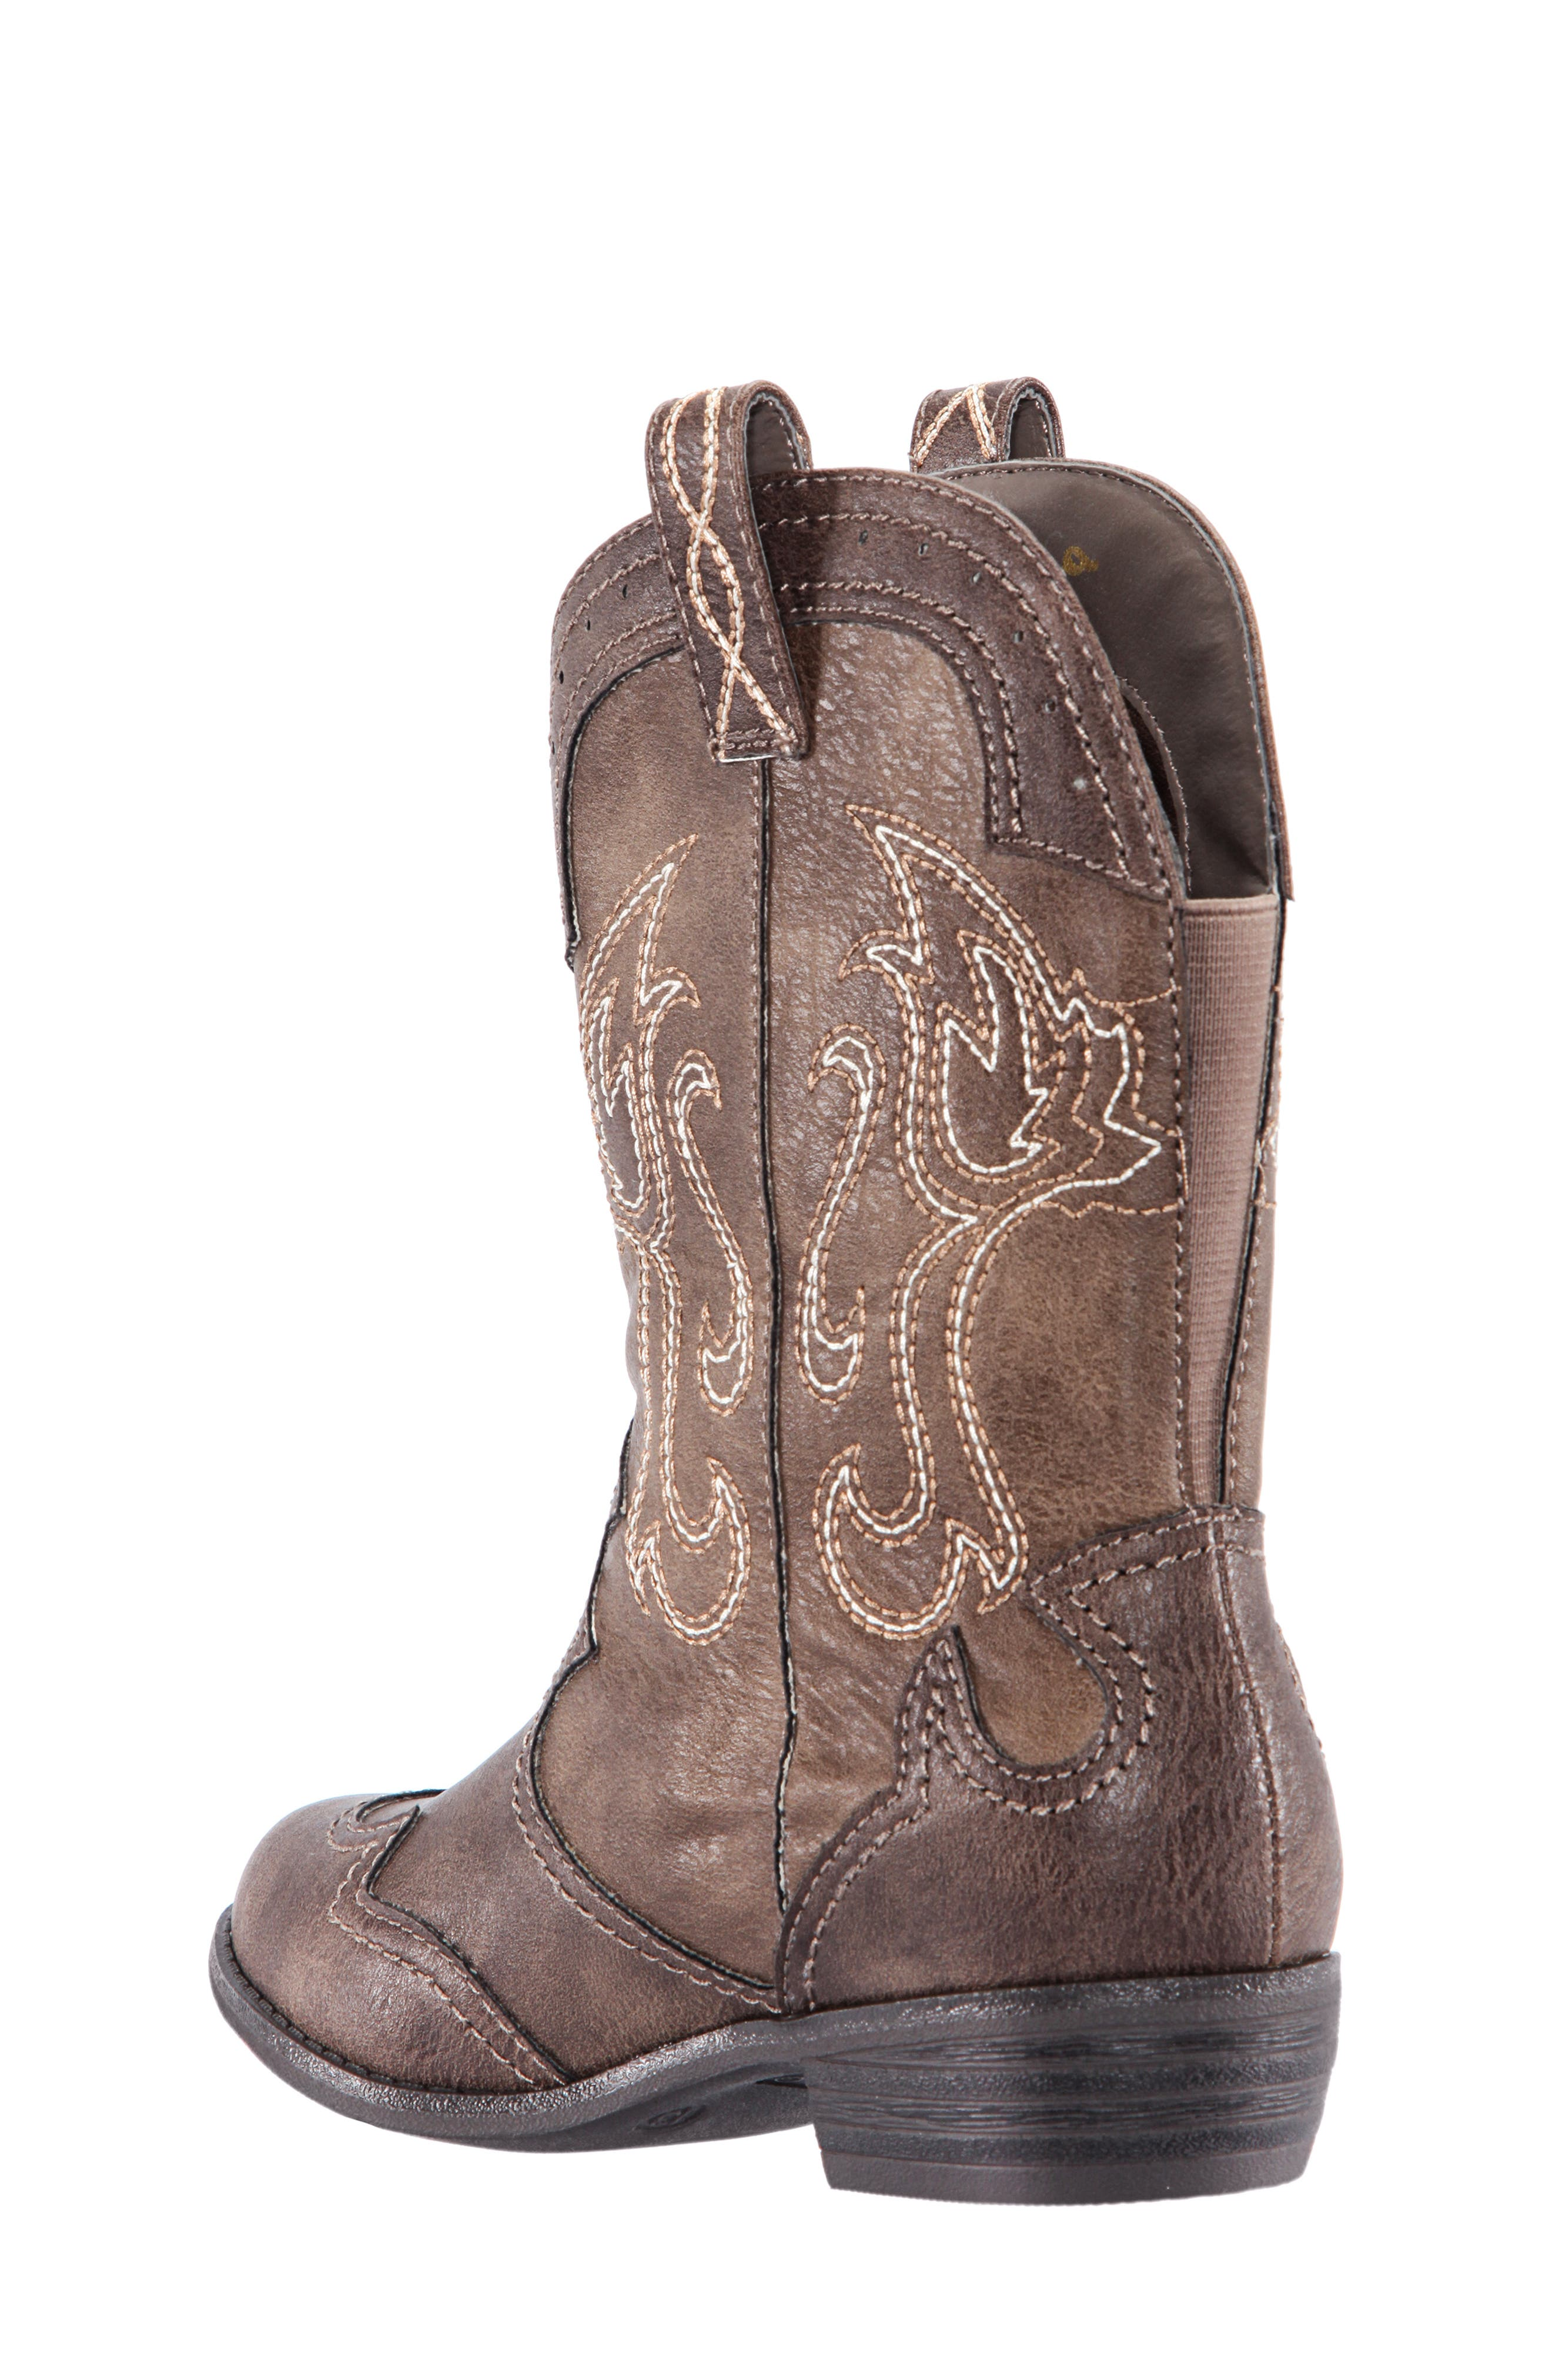 Beti Western Boot,                             Alternate thumbnail 2, color,                             BROWN DISTRESSED